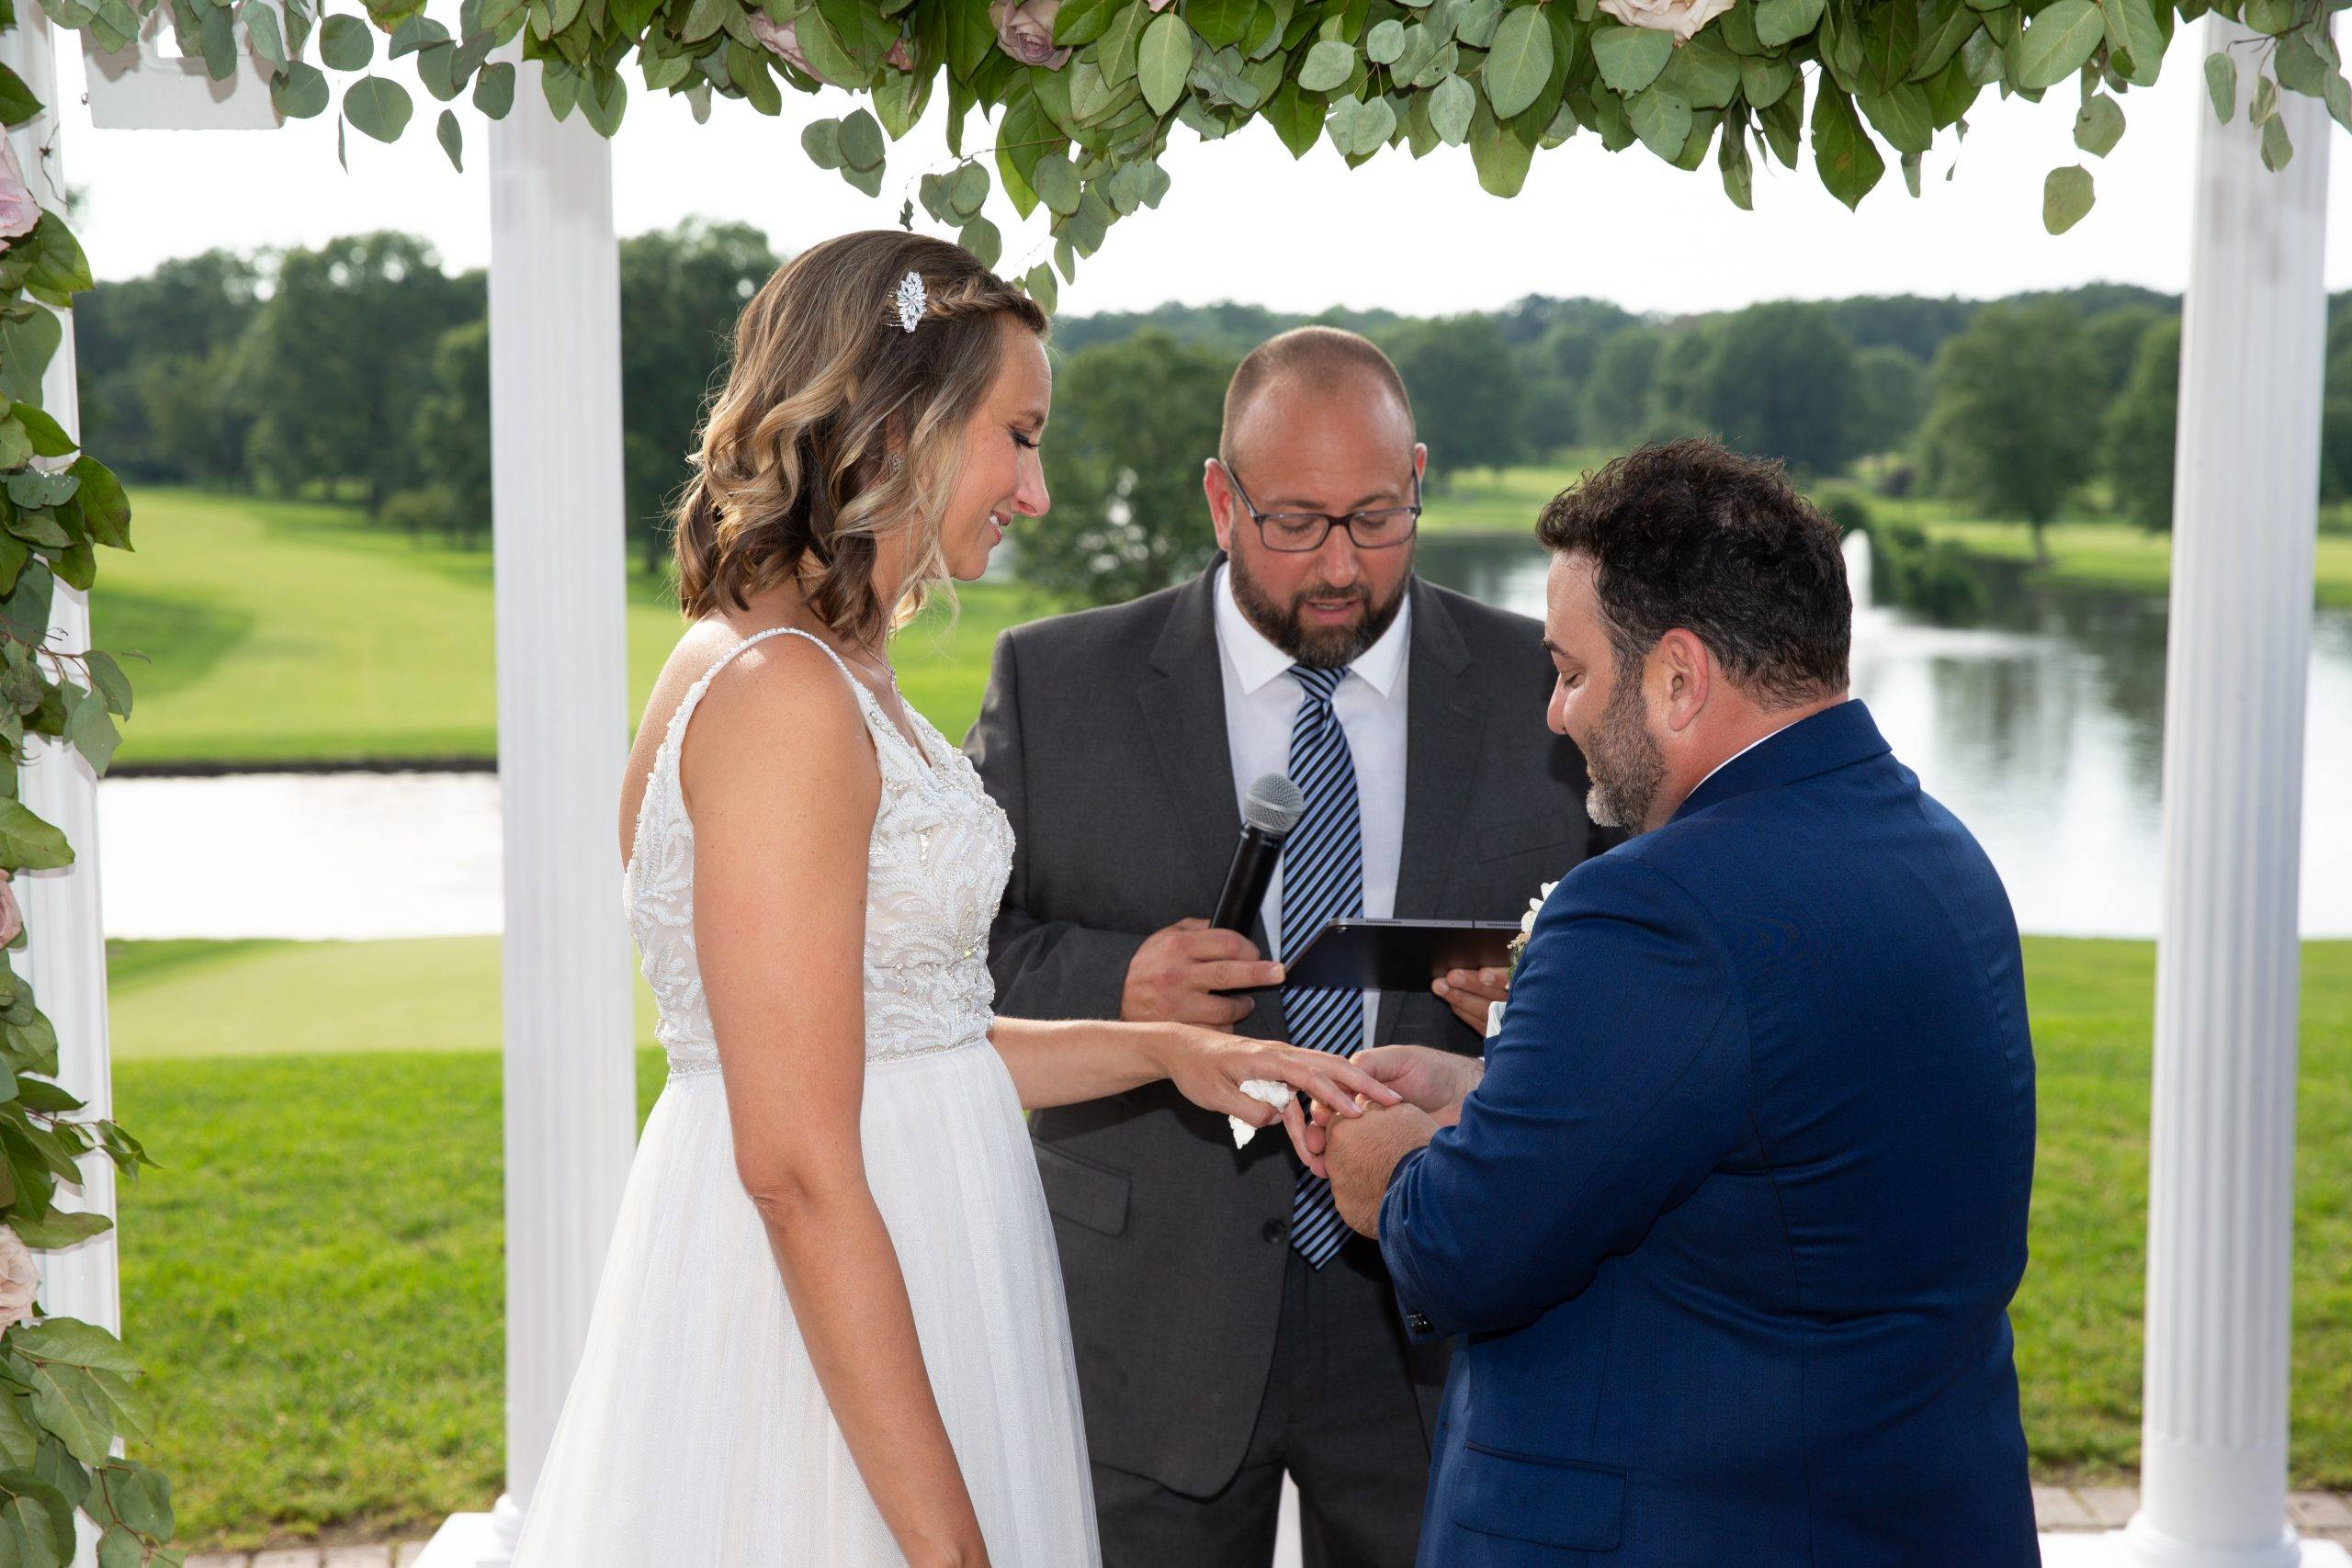 Brooklake bride and groom exchanging rings by the lake